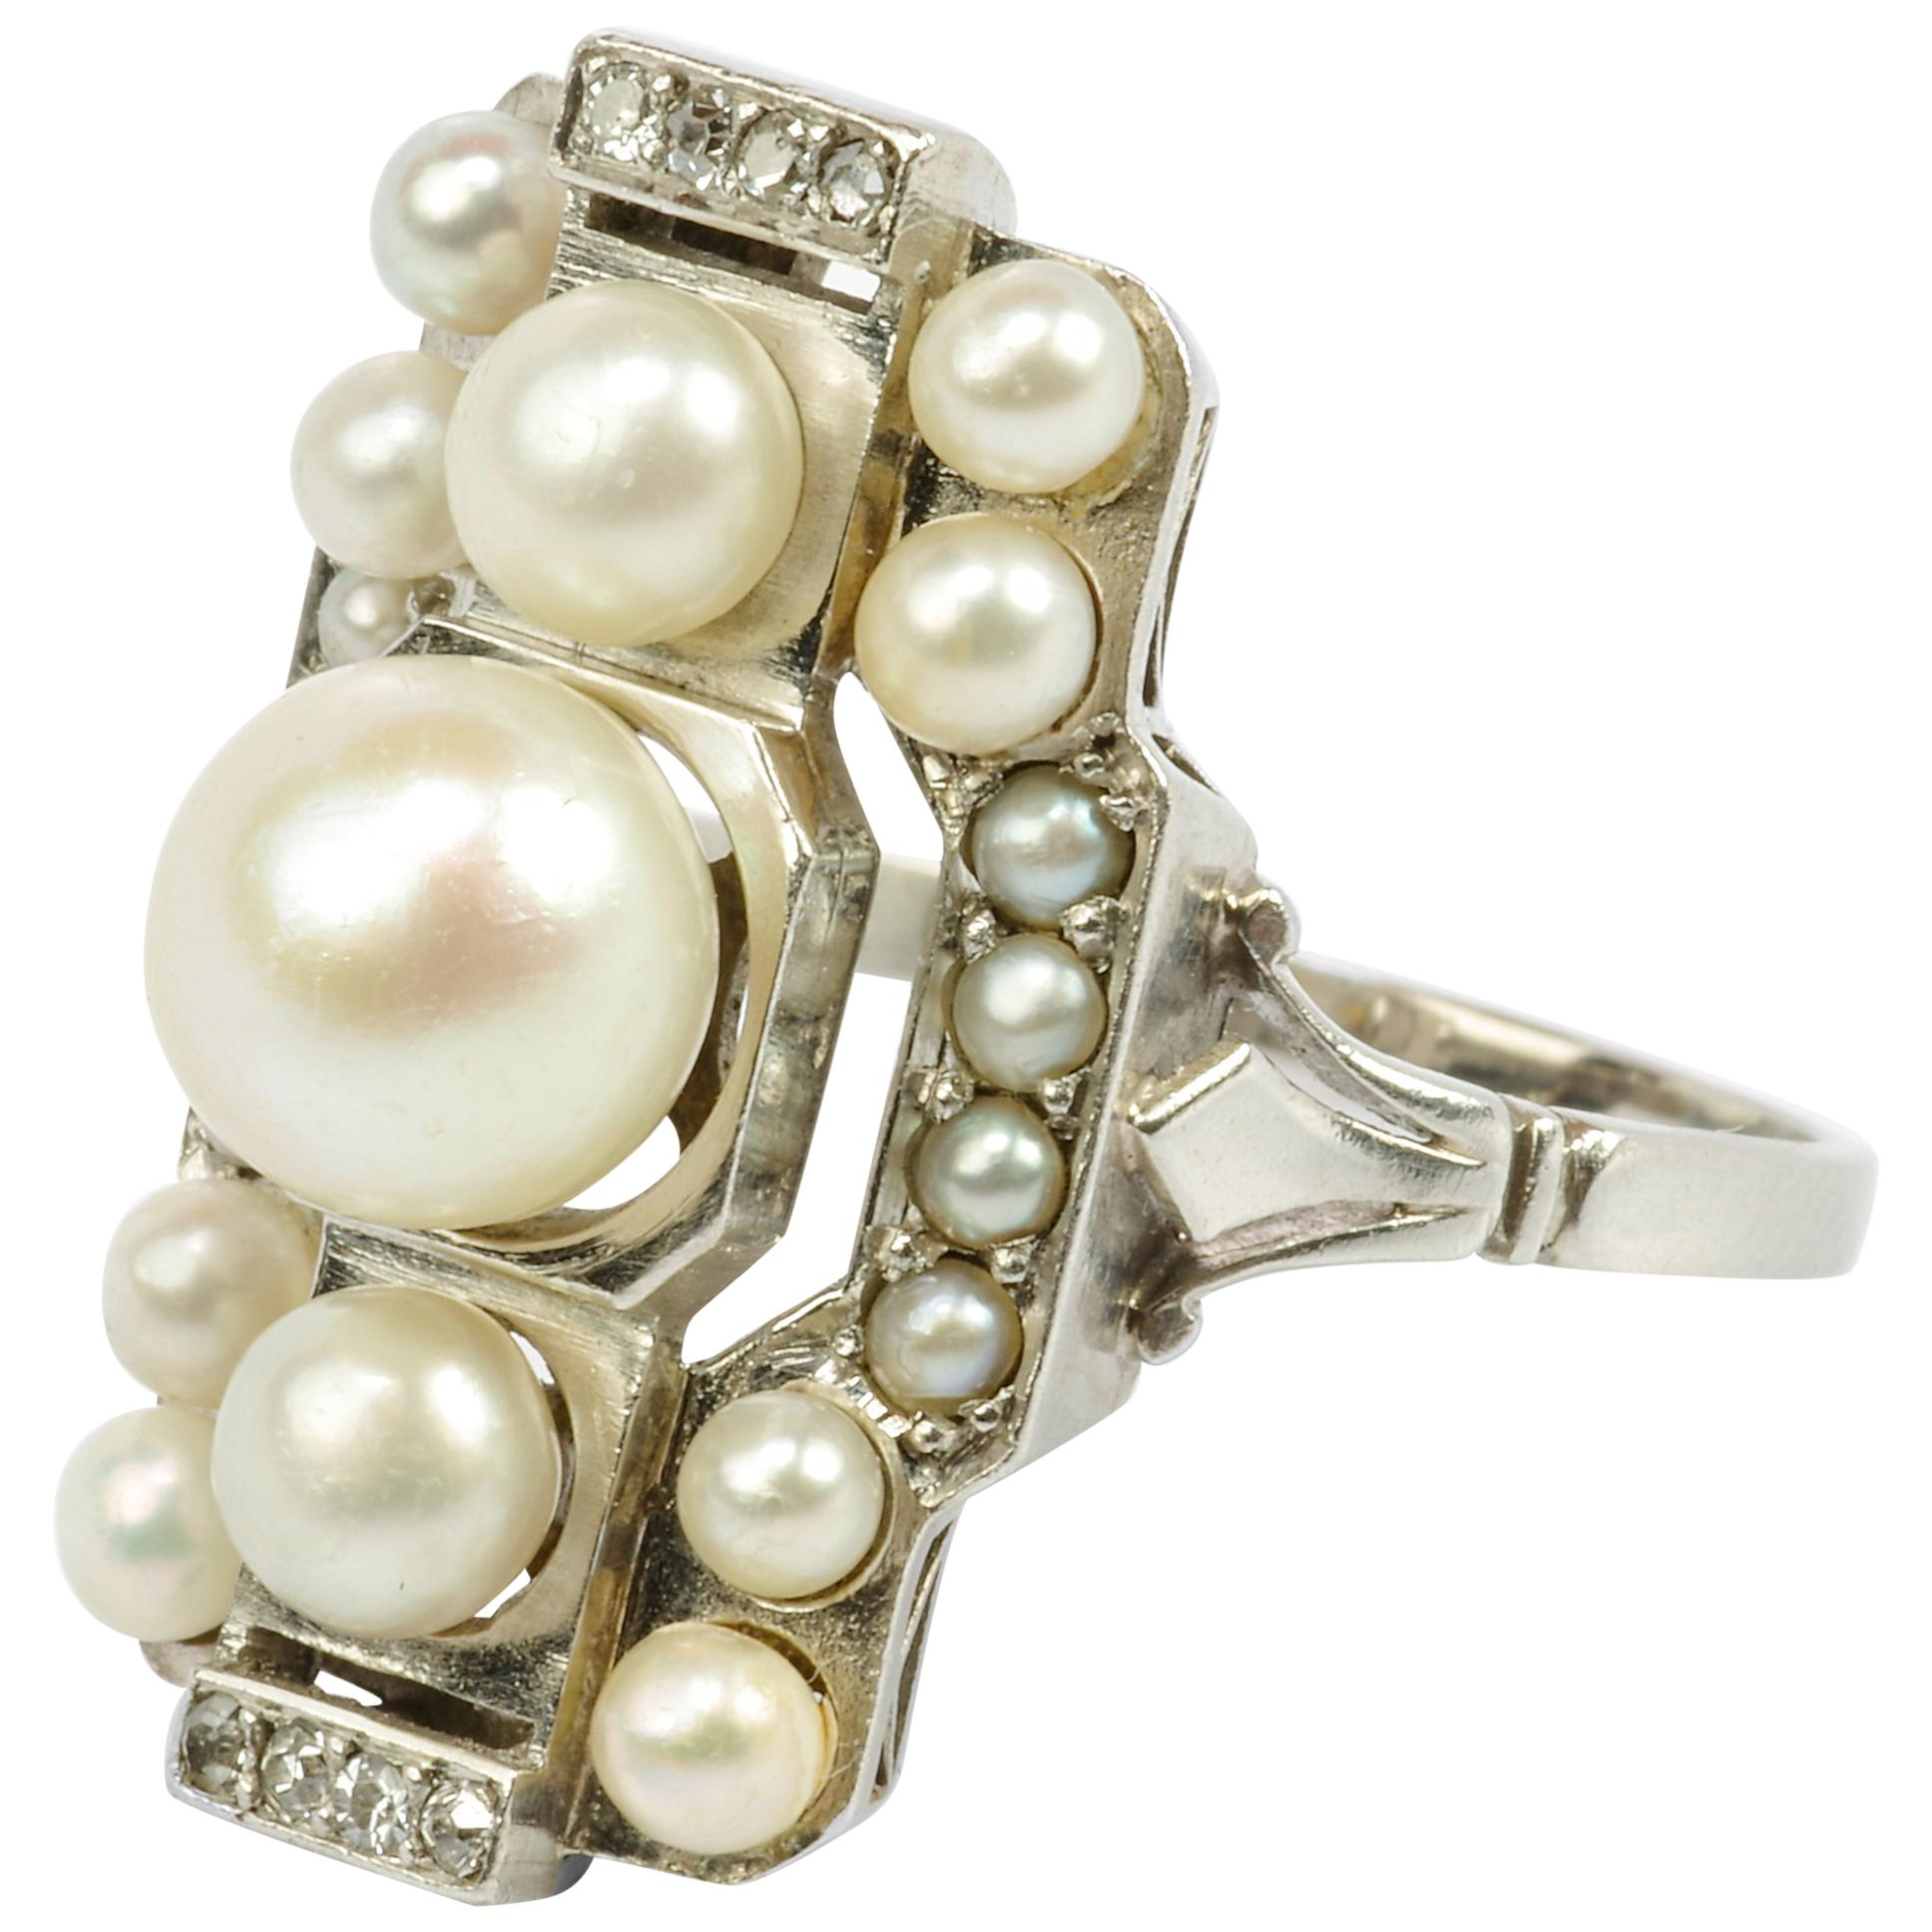 Pearl Ring with Diamonds French Art Deco Certified Natural Uncultured